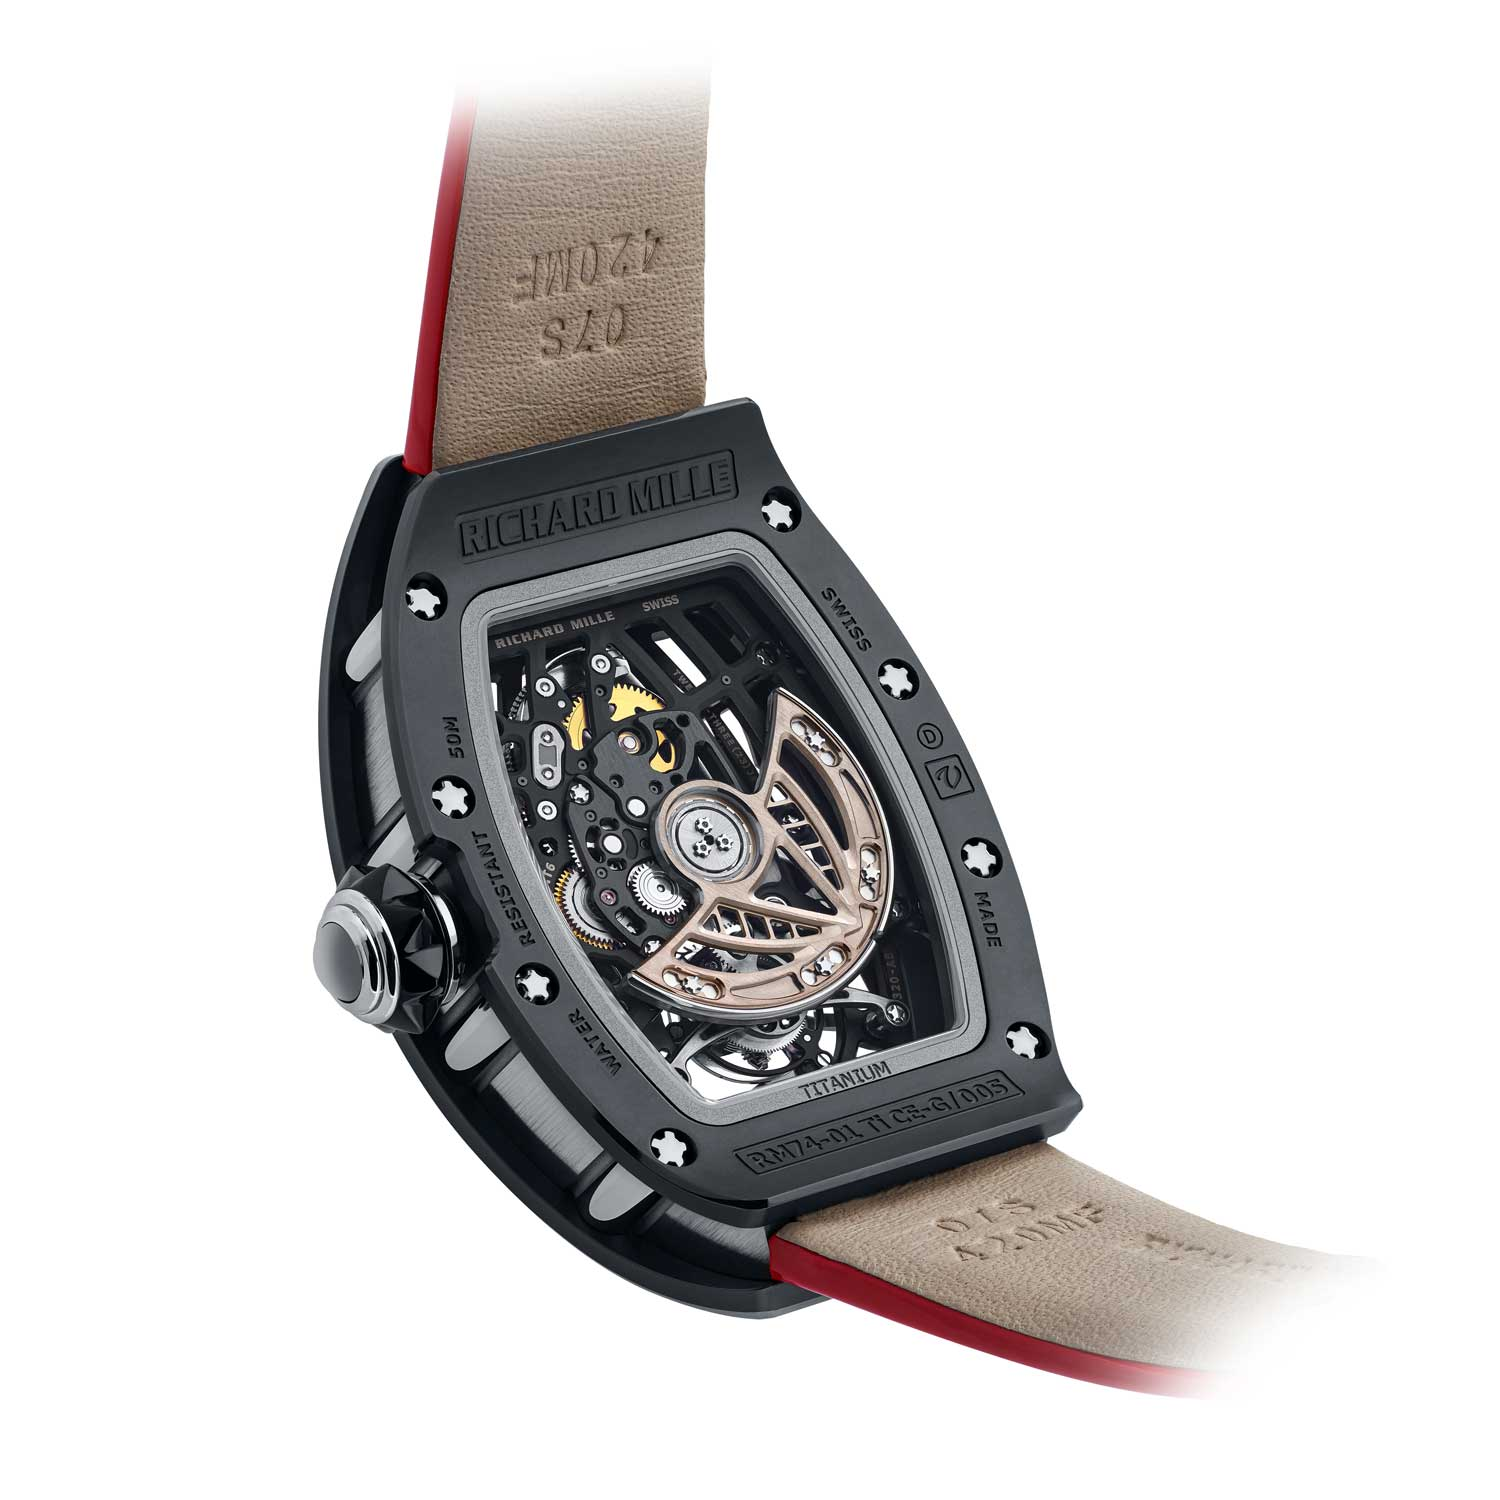 The watch is powered by in-house calibre CRMT6